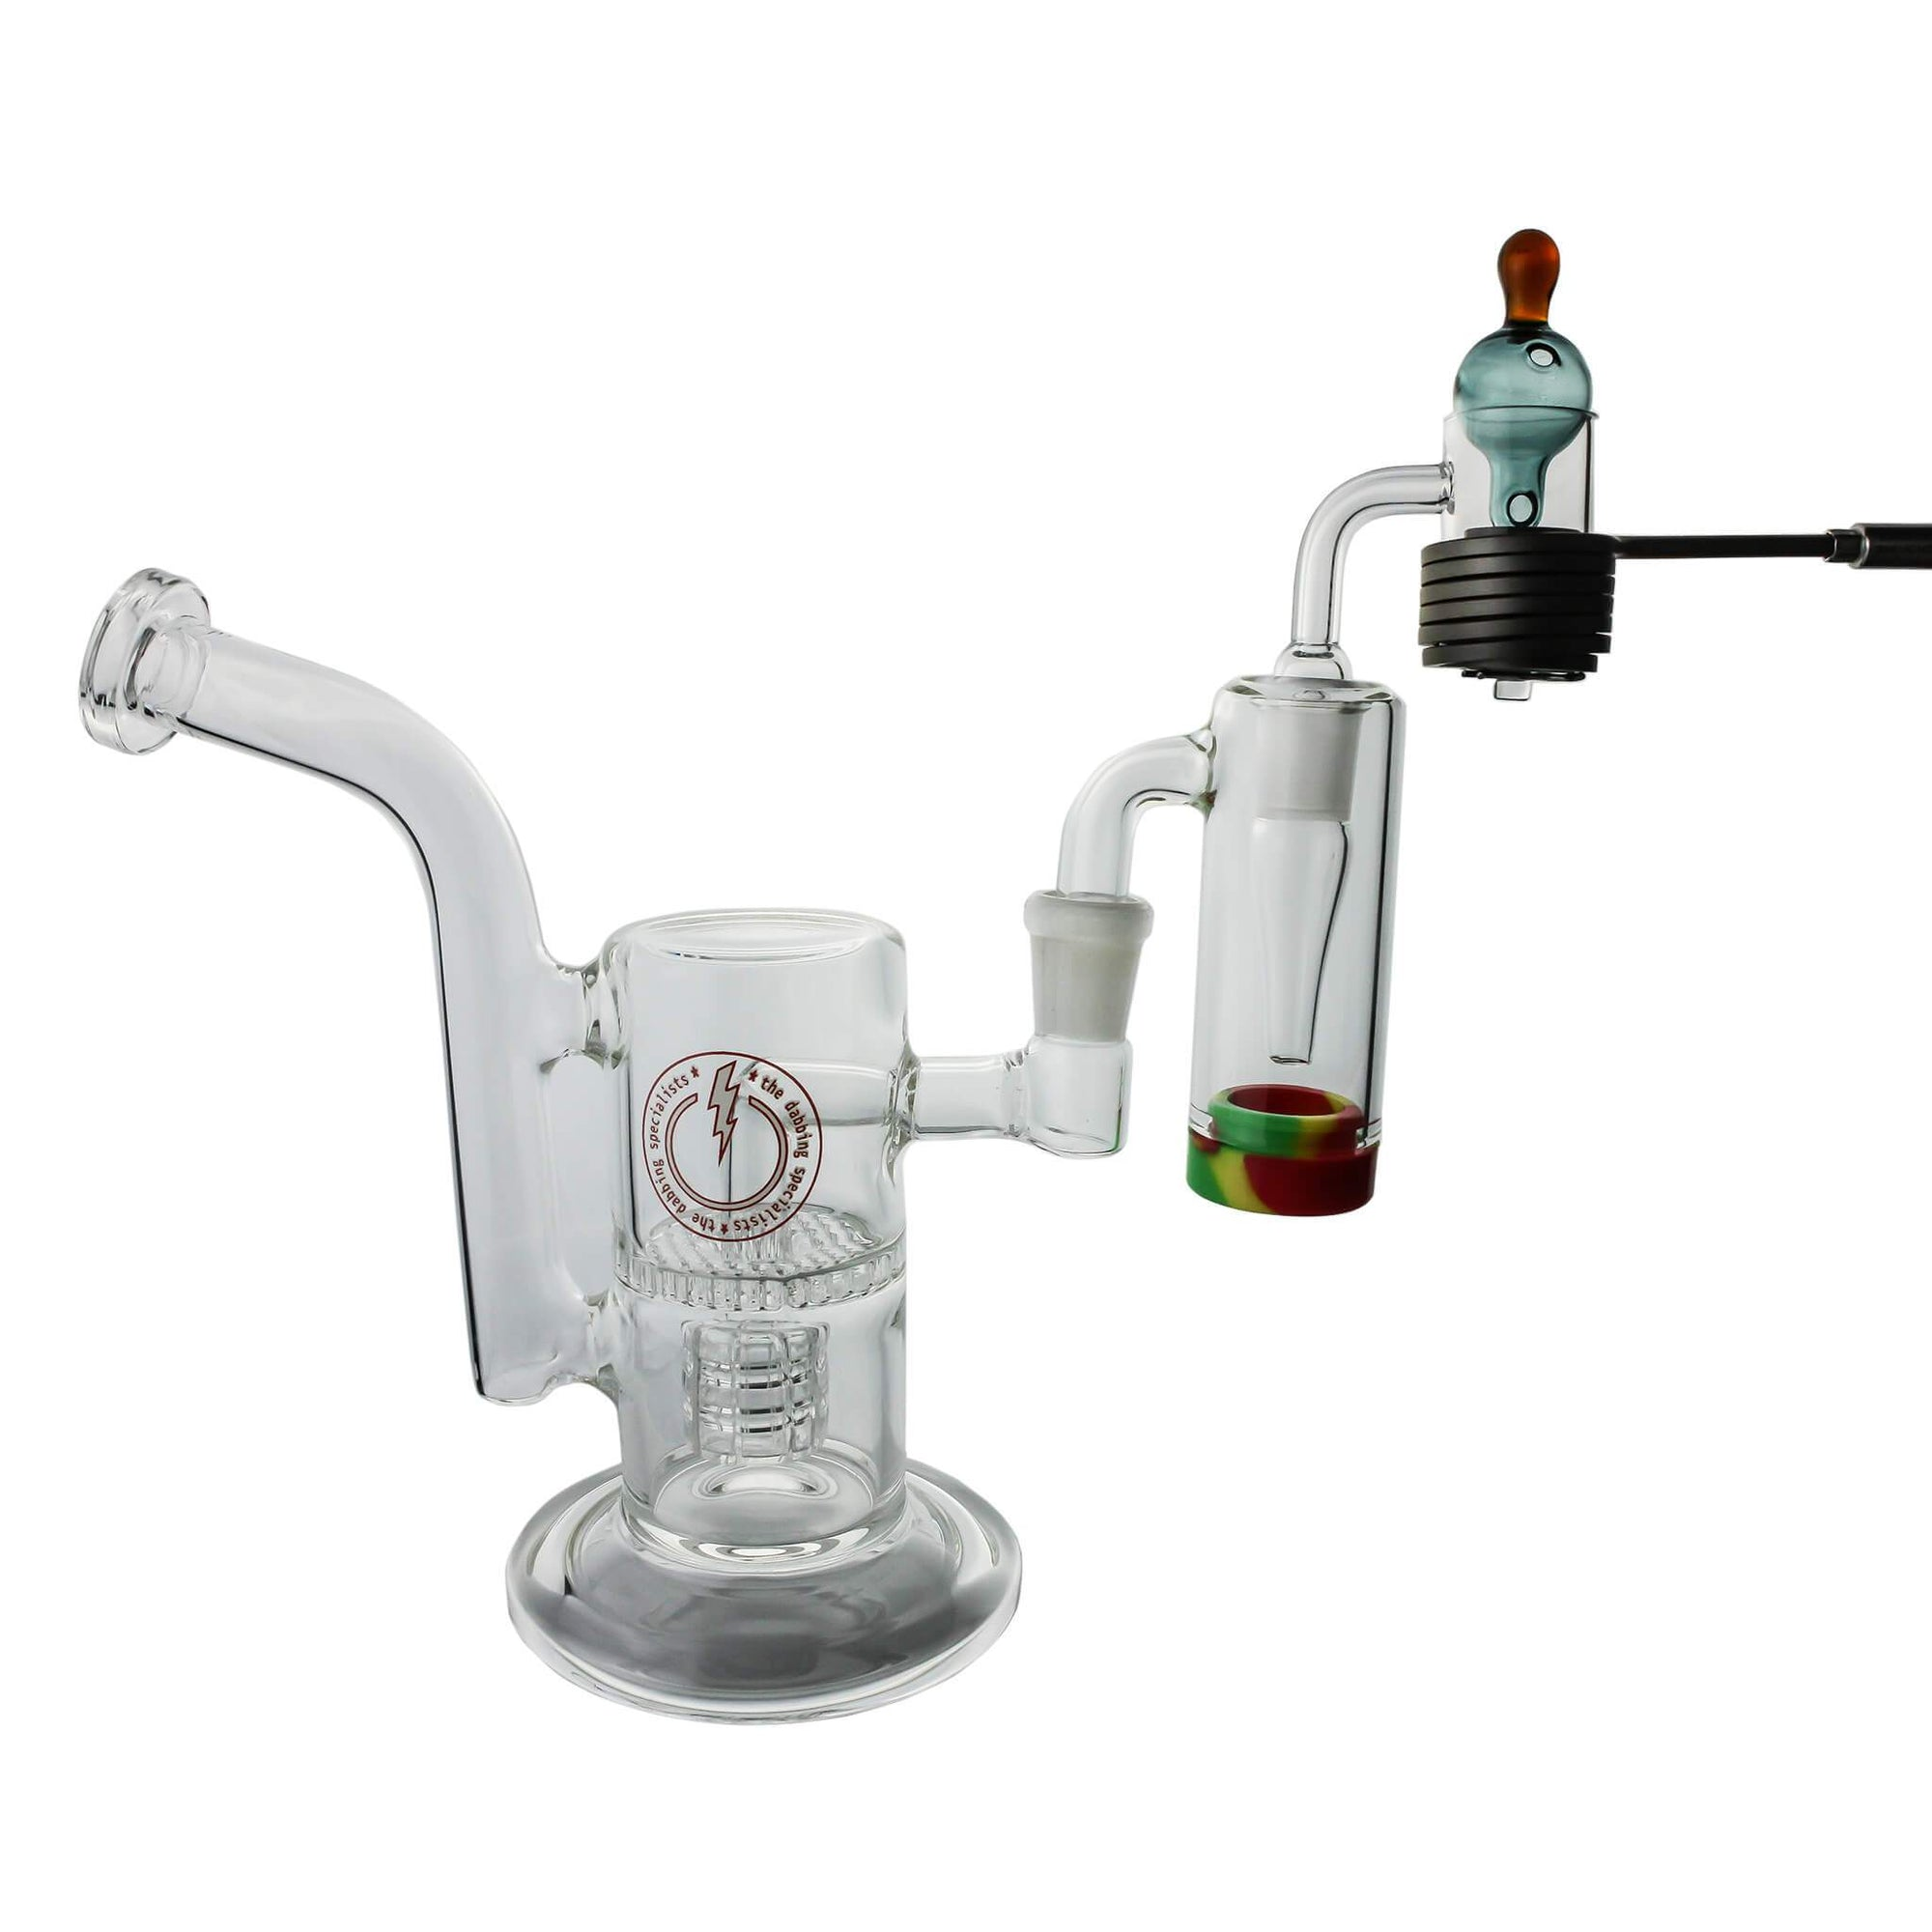 25mm Mini Enail Complete Dabbing Kit #1_Profile